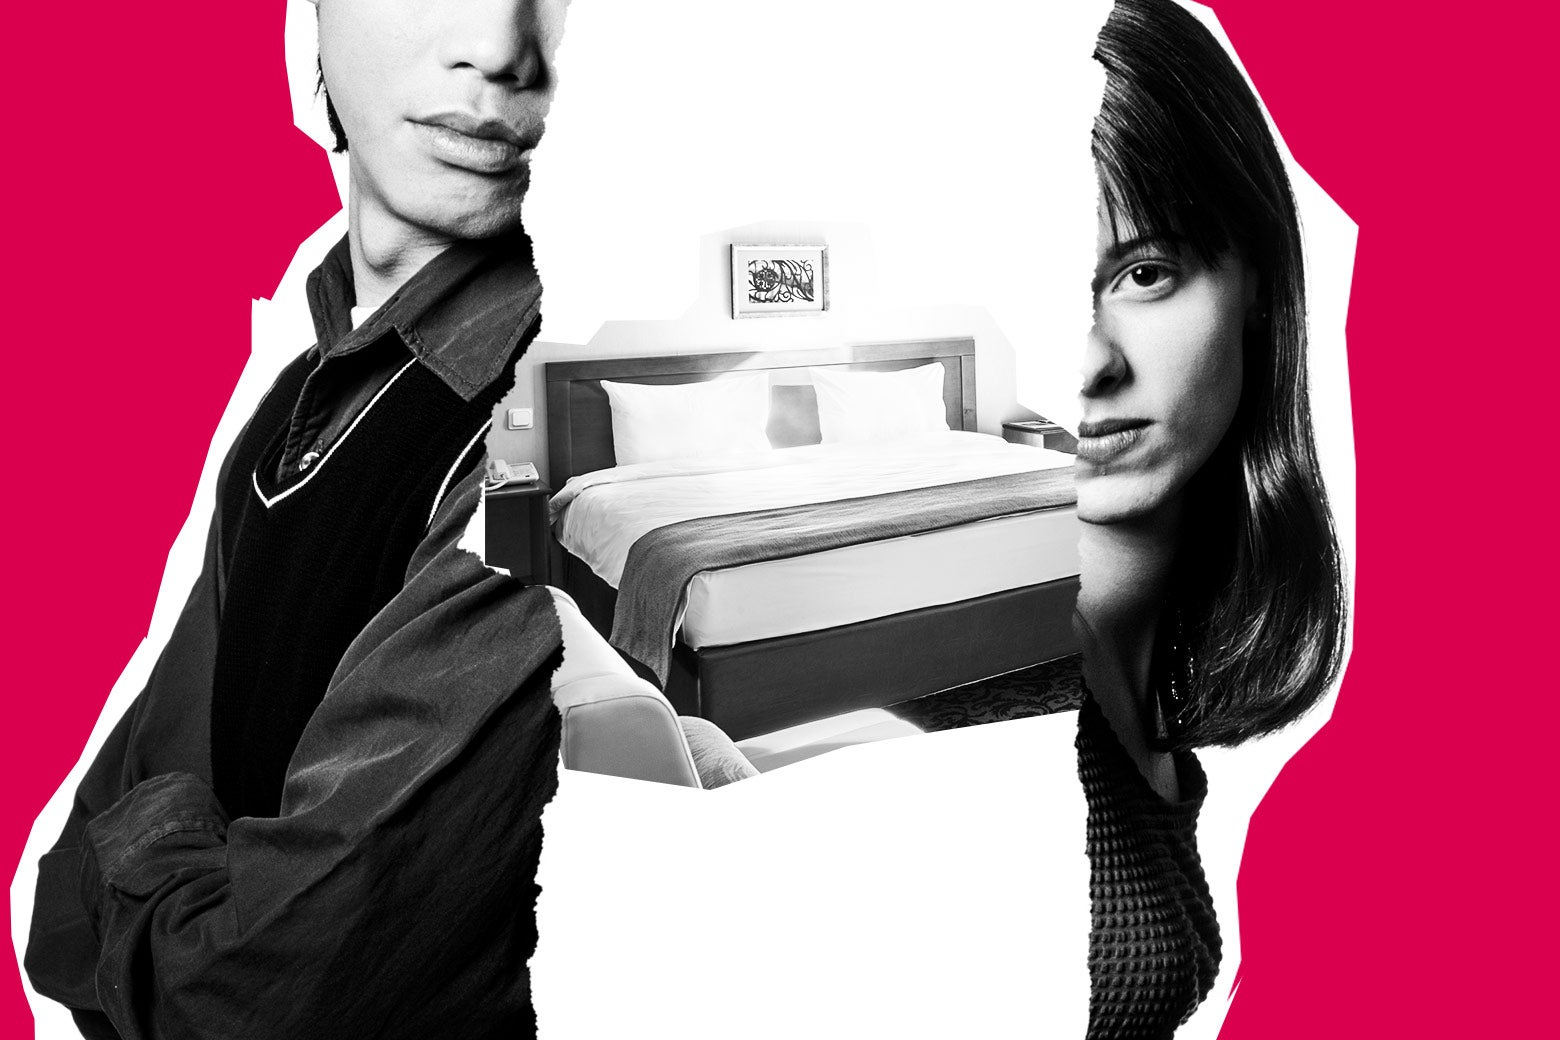 Adult siblings on either side of an image of a hotel bed.